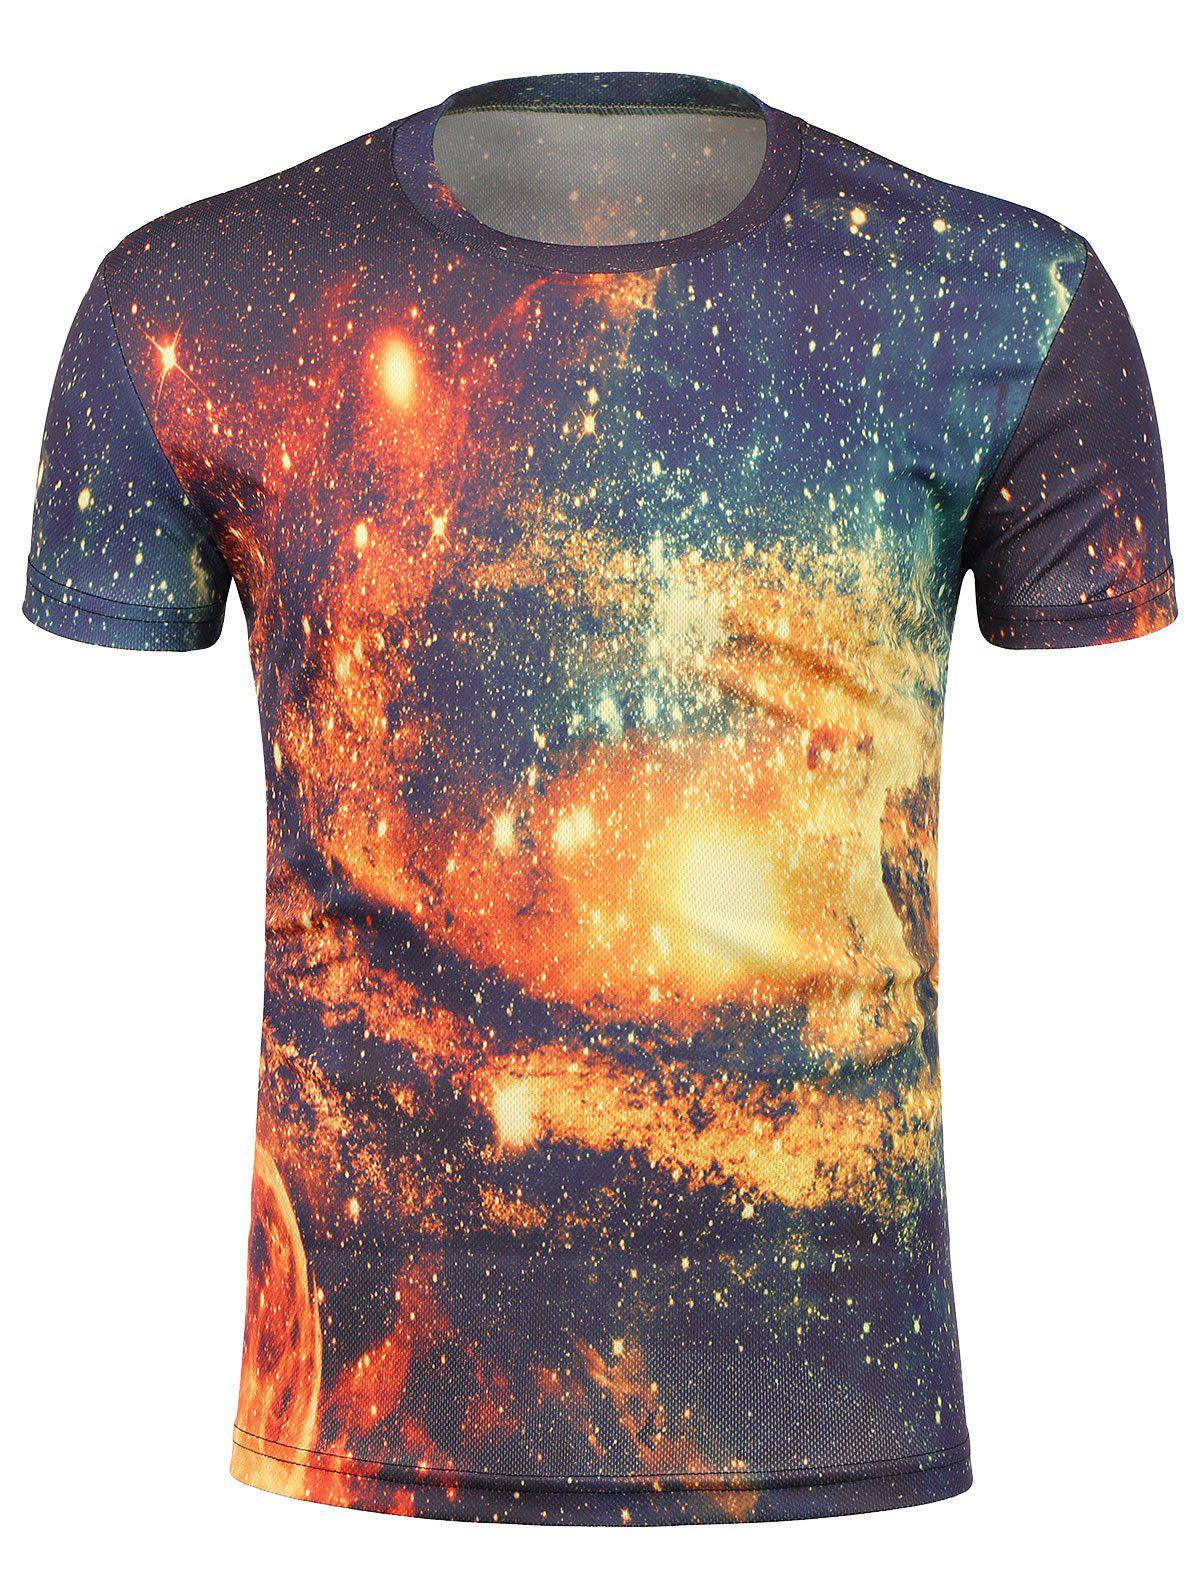 3D Galaxy Print Crew Neck Trippy T-Shirt 3d galaxy print crew neck trippy t shirt